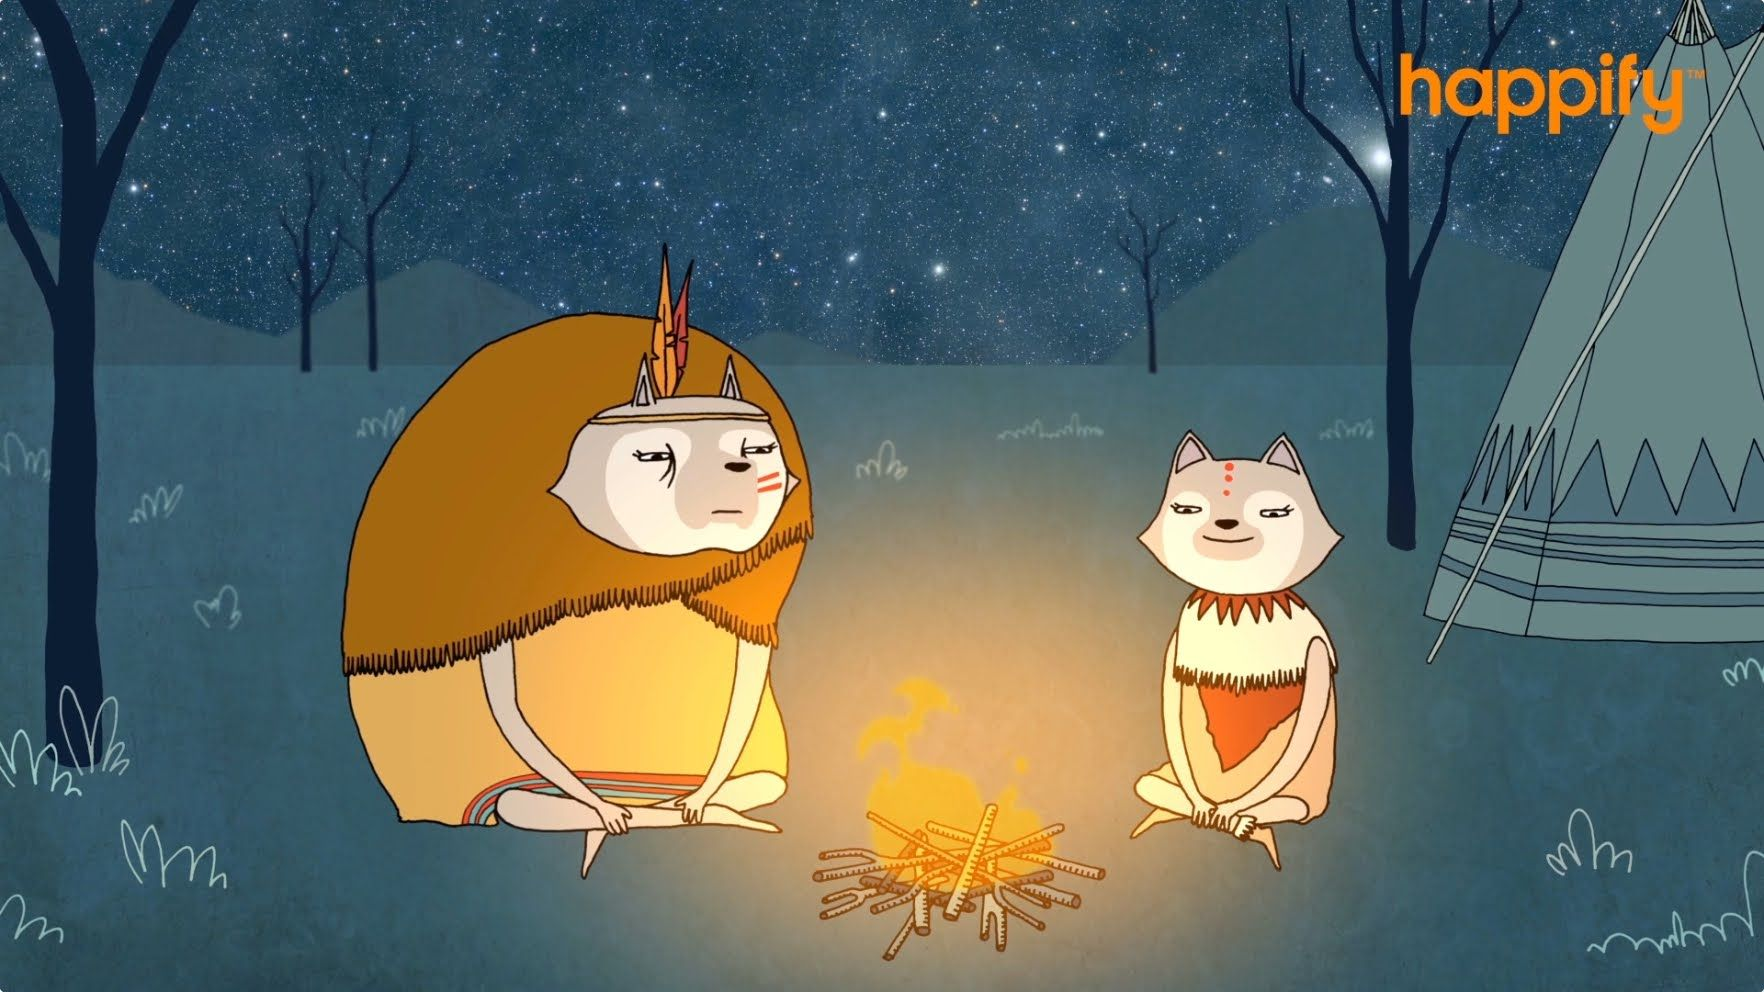 How Mindfulness Empowers Us: An Animation Narrated by Sharon Salzberg. Pinned by @mhkeiger.